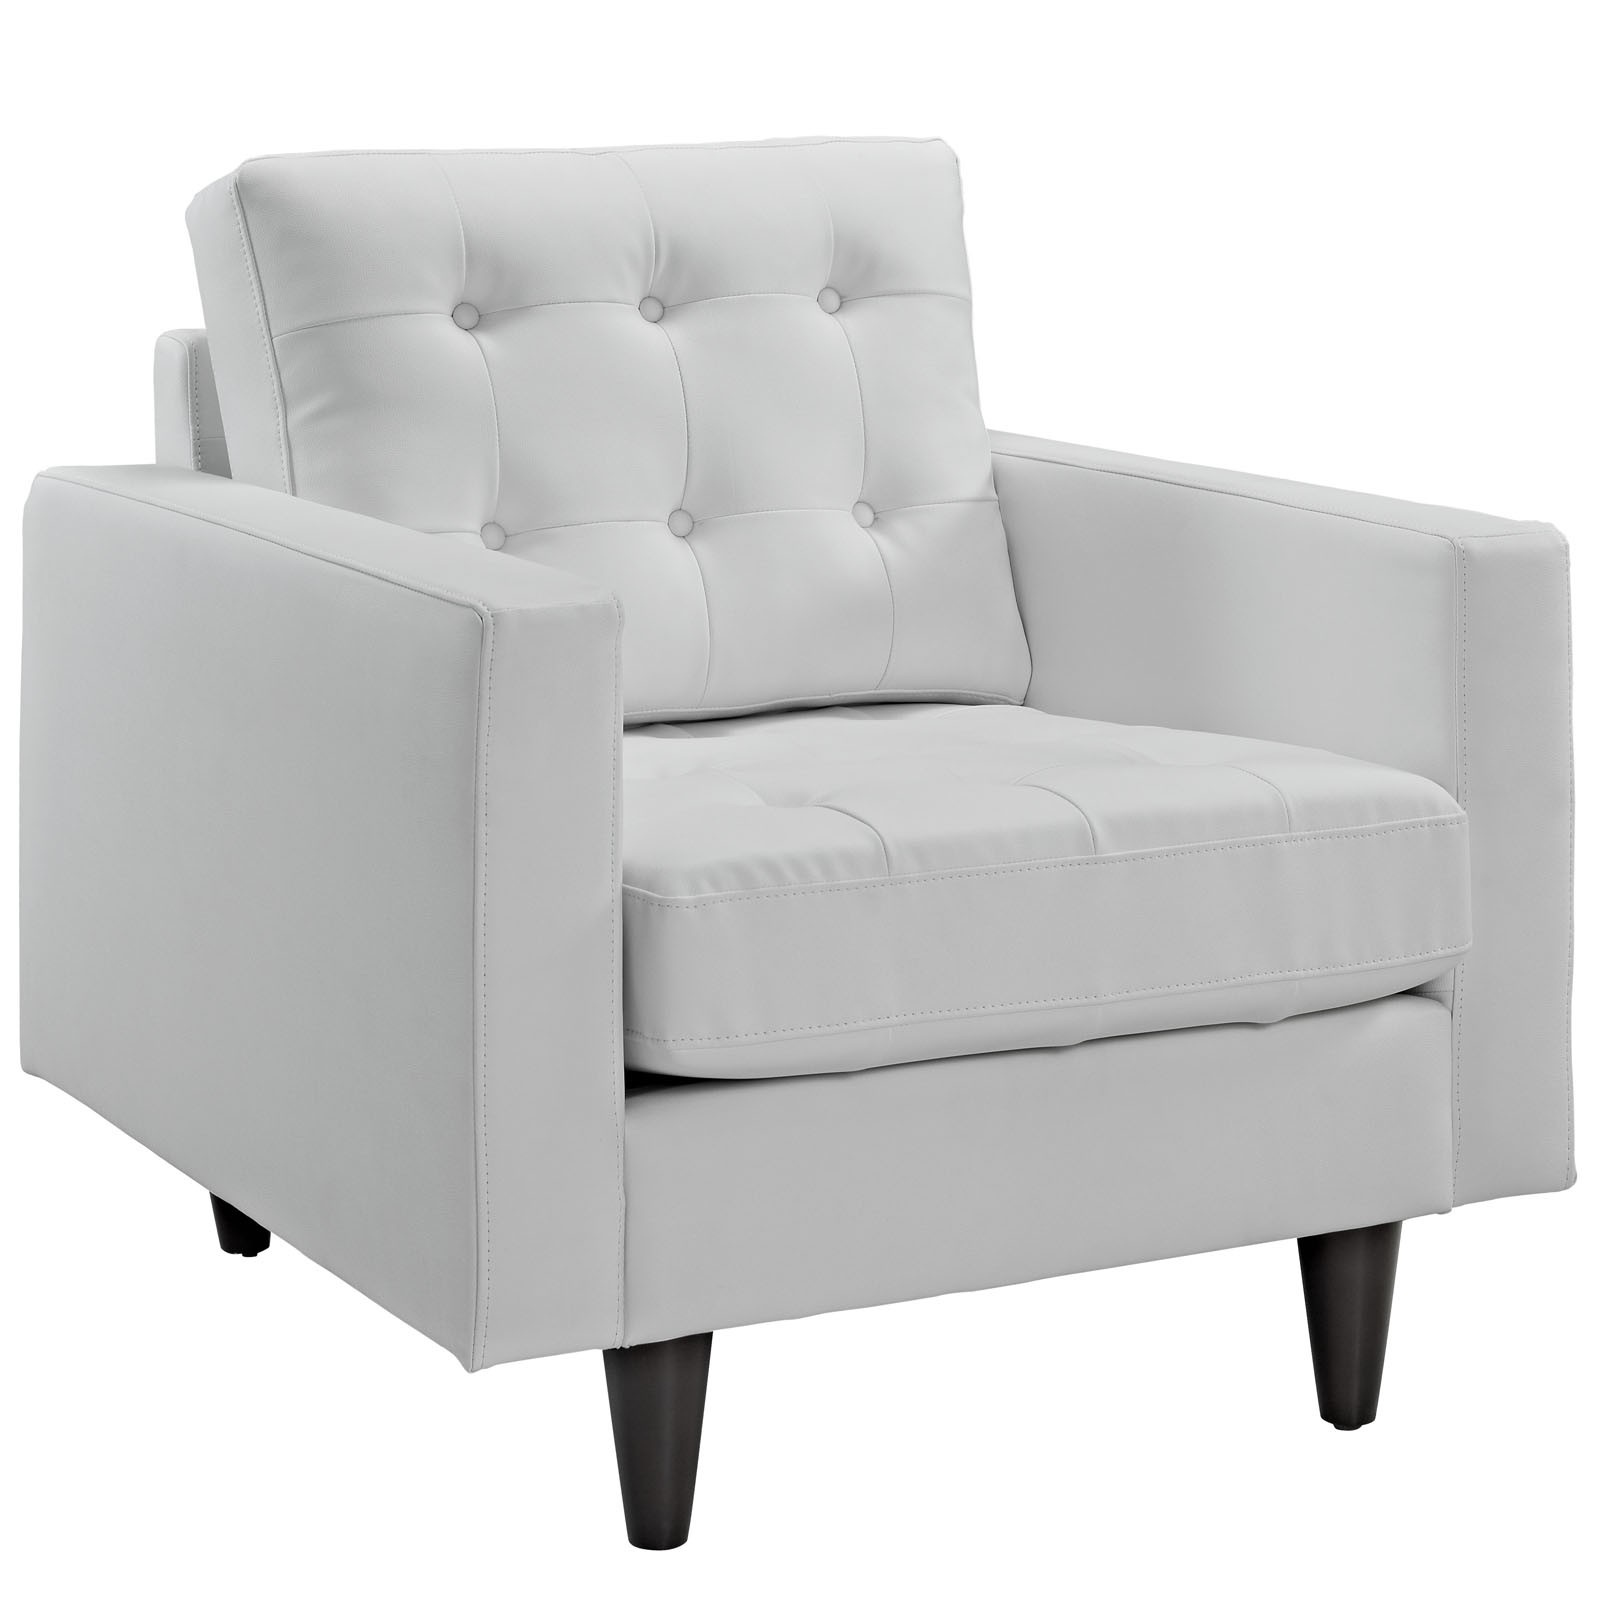 Arm Chairs Set Of 3 Eei 1312 Whi